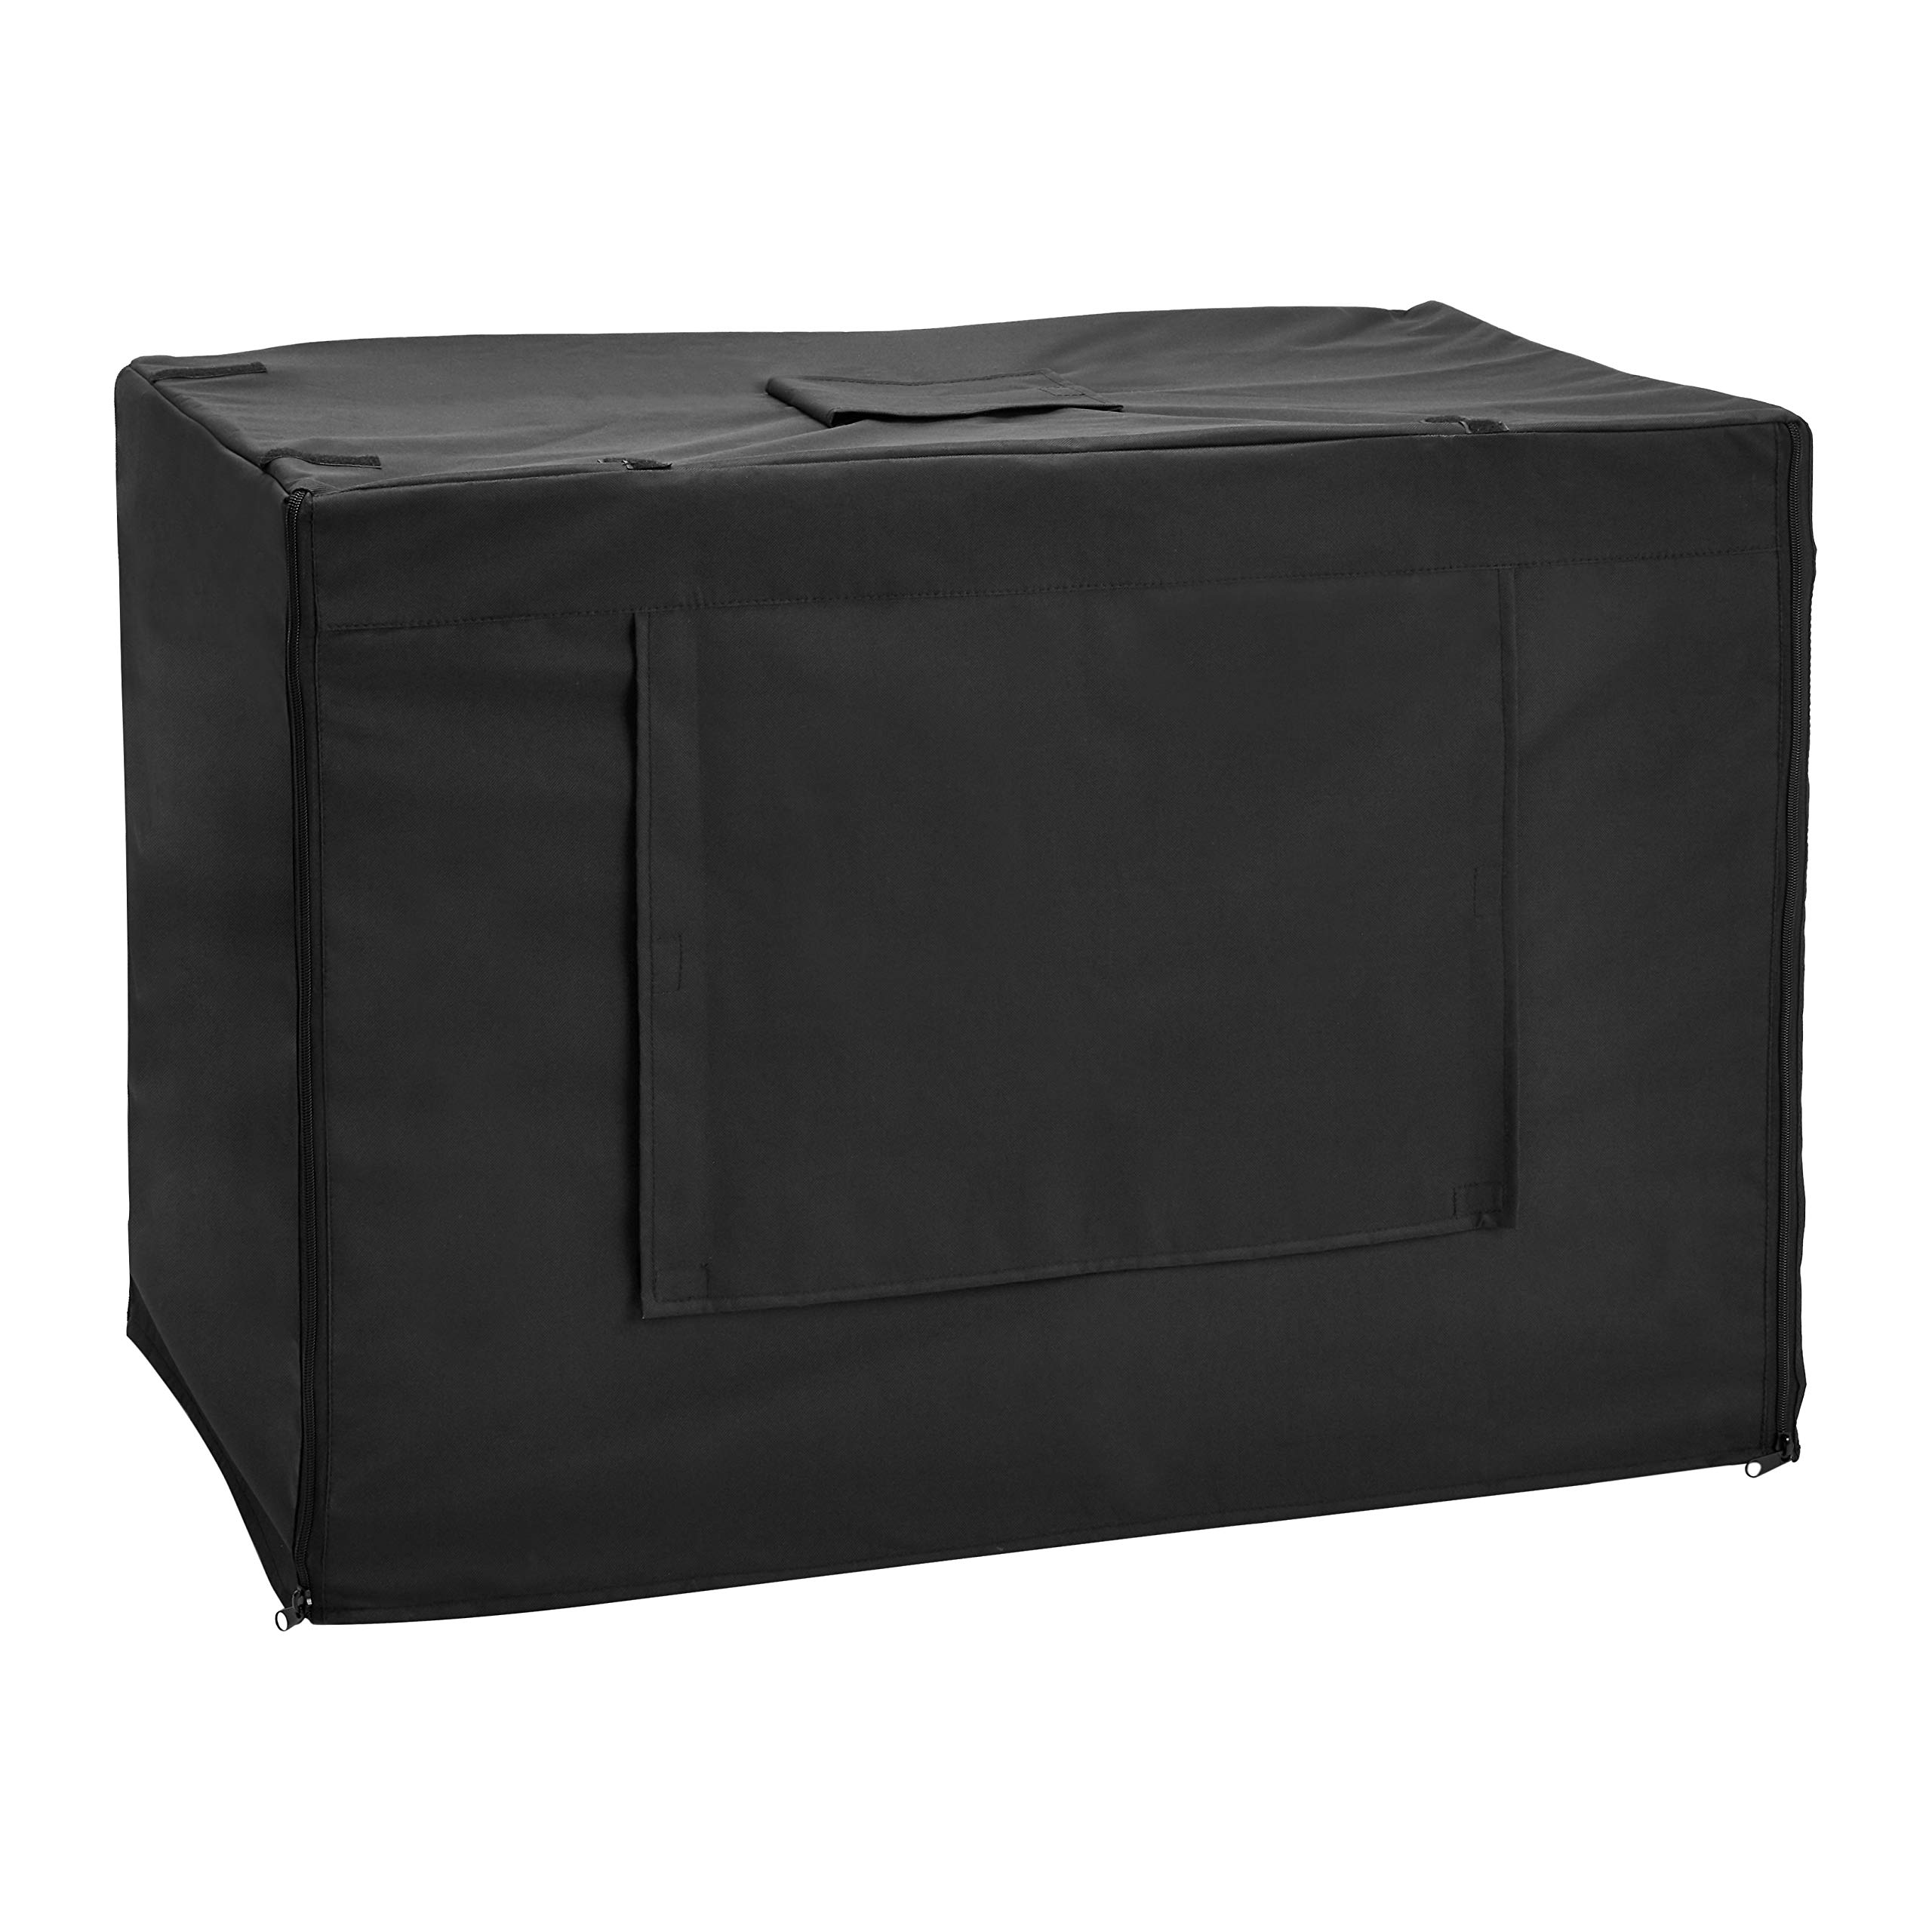 AmazonBasics Dog Crate Kennel Cover - 36 Inch, Black by AmazonBasics